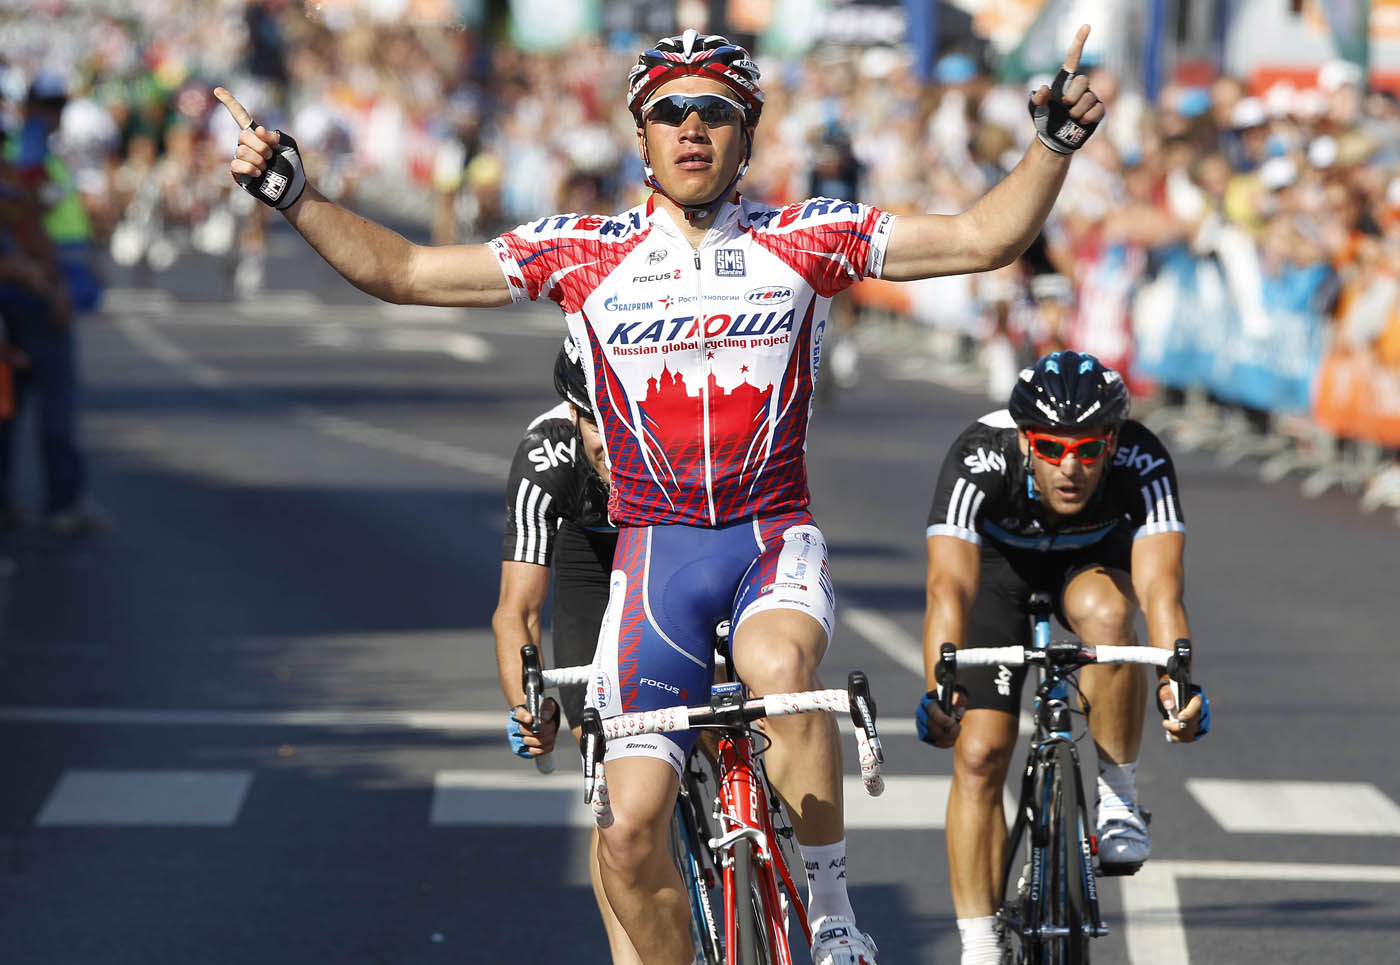 Denis Galimzyanov wins, Tour of Luxembourg 20911, stage one